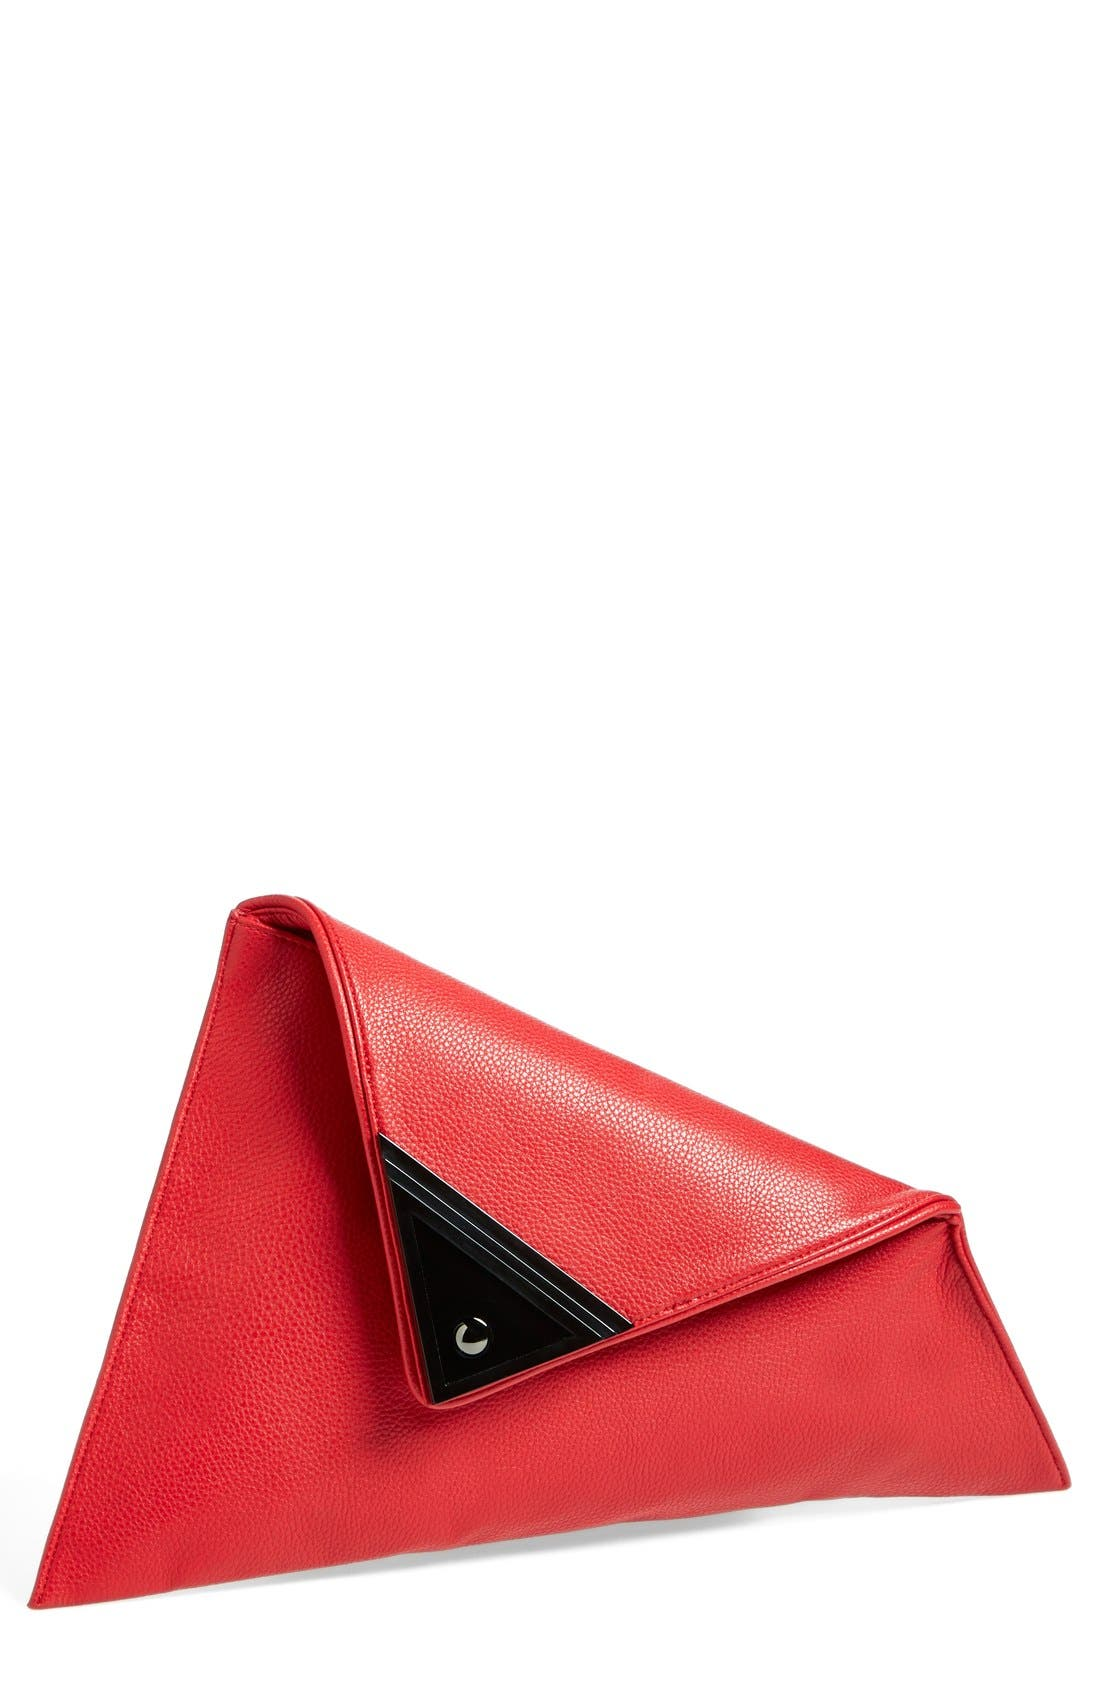 Alternate Image 1 Selected - Sondra Roberts 'Modern Prep' Faux Leather Triangle Clutch